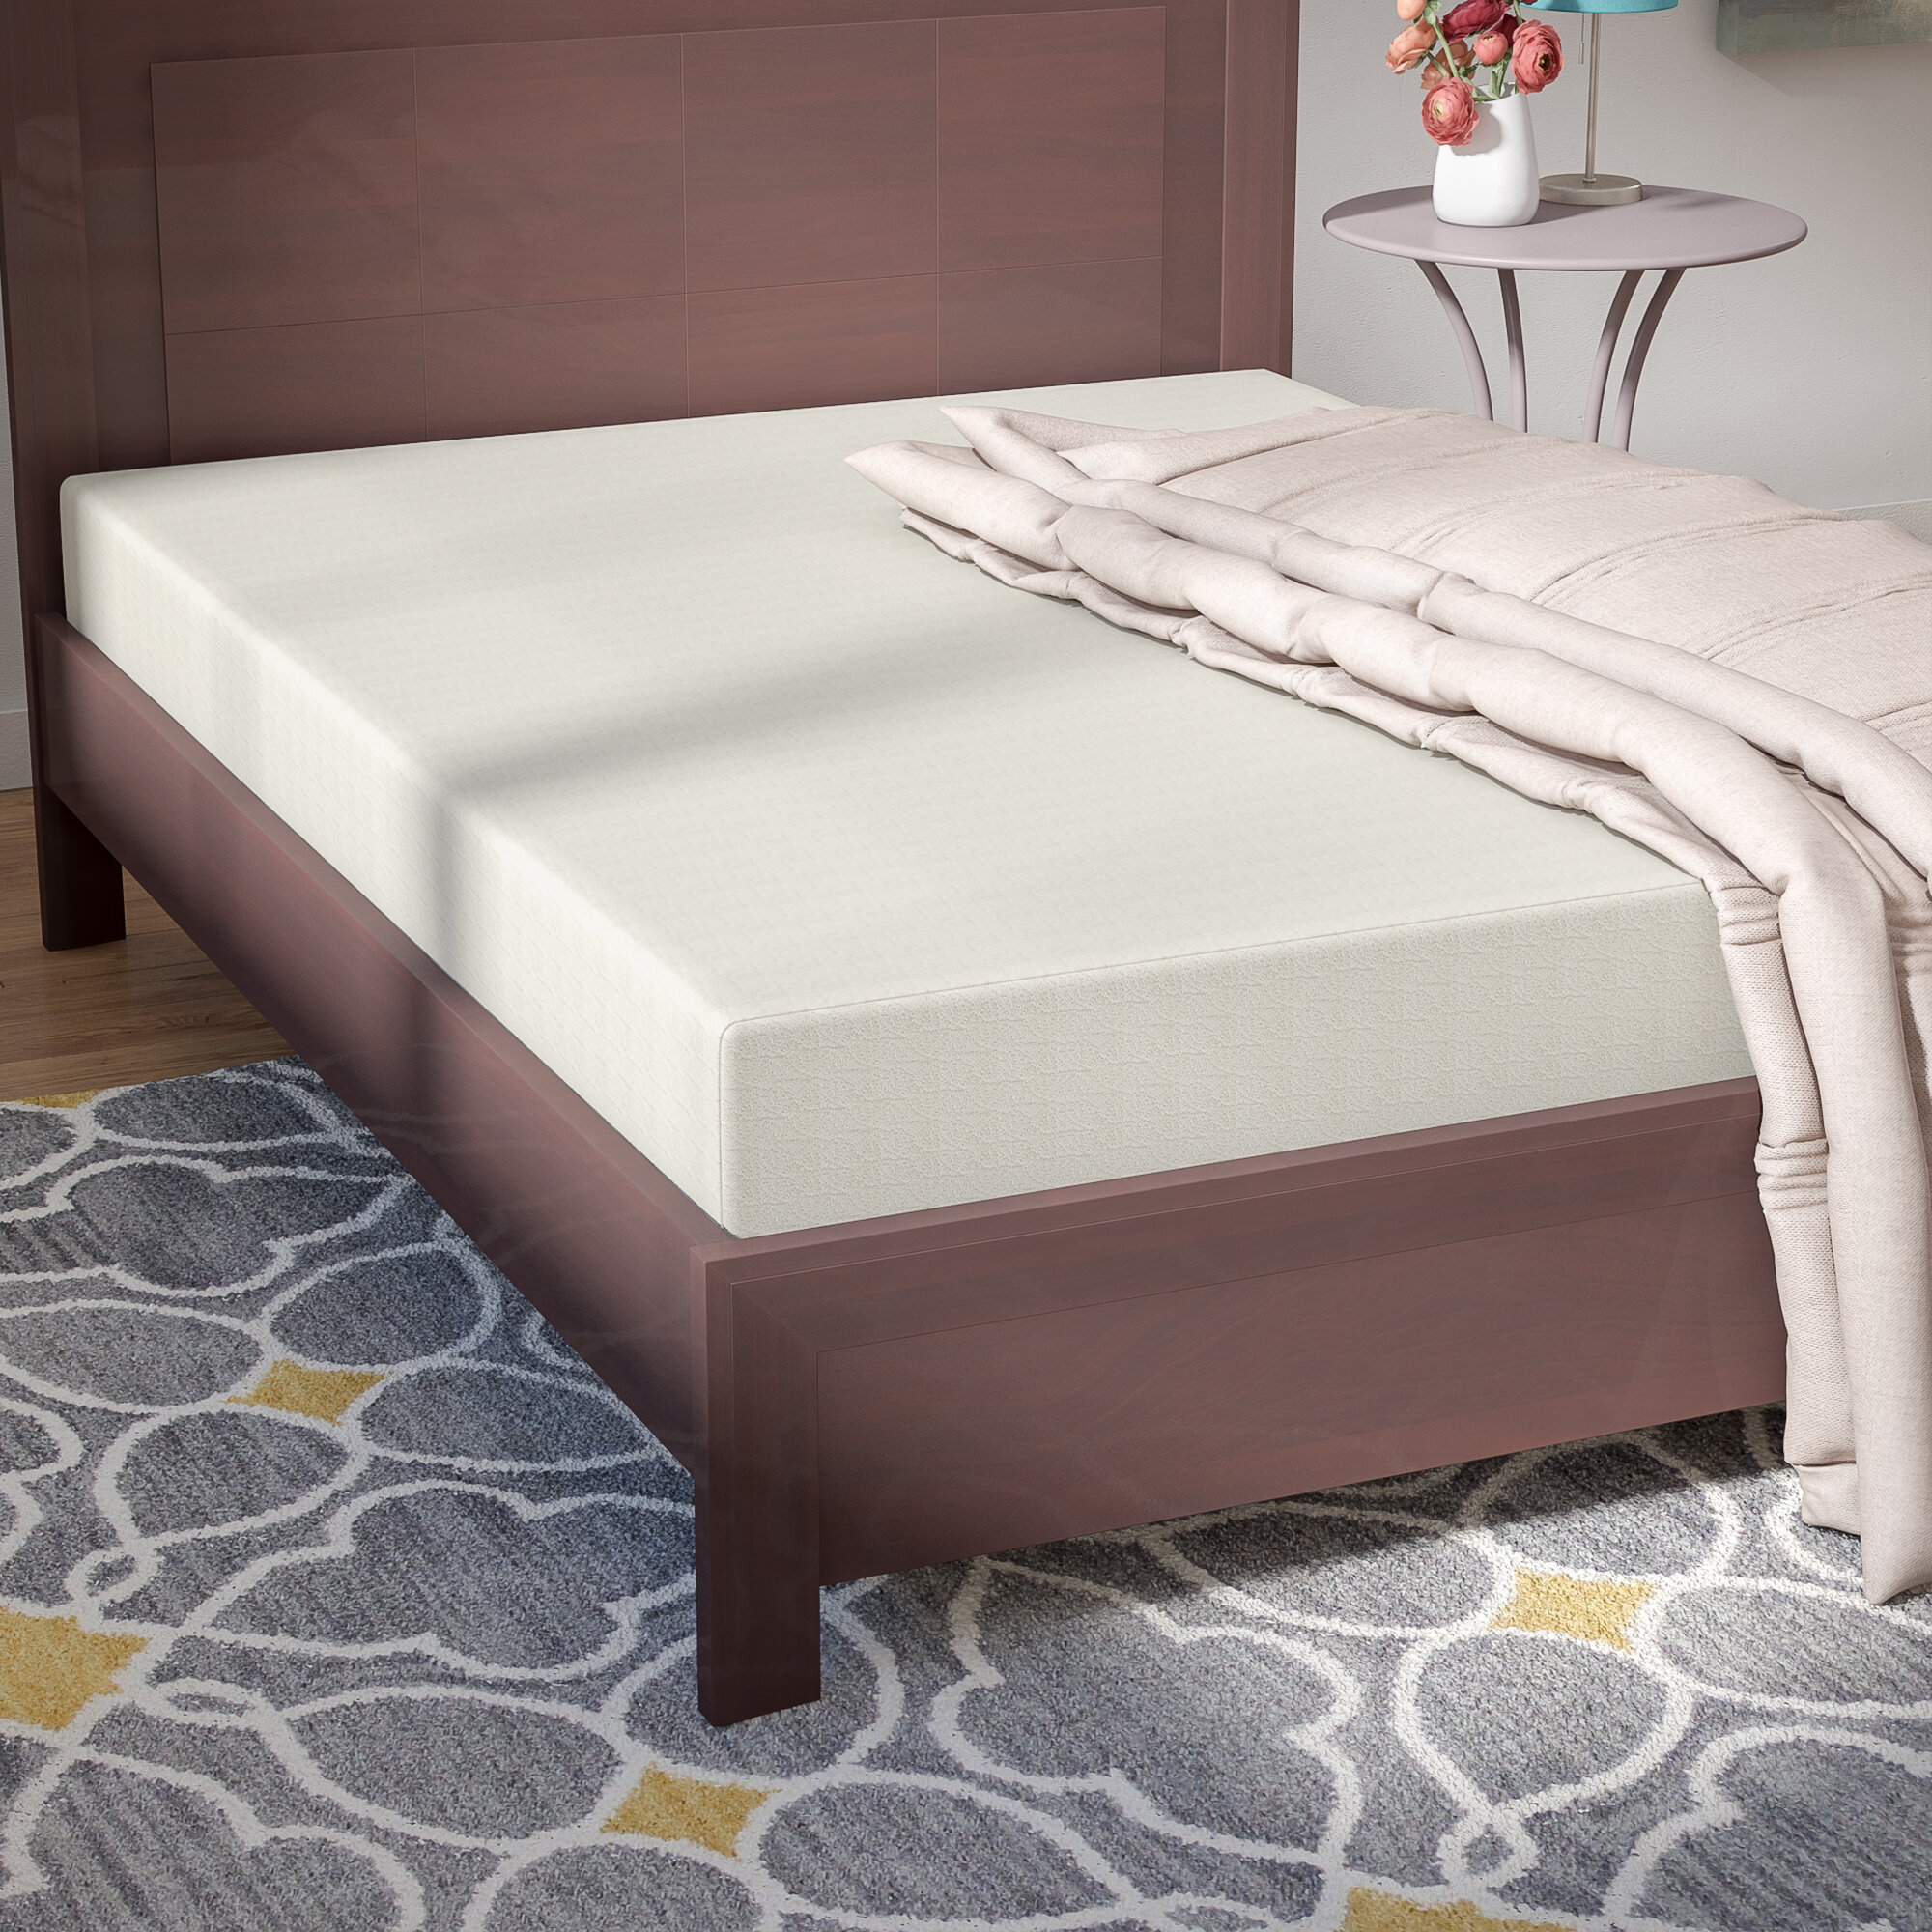 comfortable sleep best posts mattress elizabeth take to shipping lies the nectar things time most buy